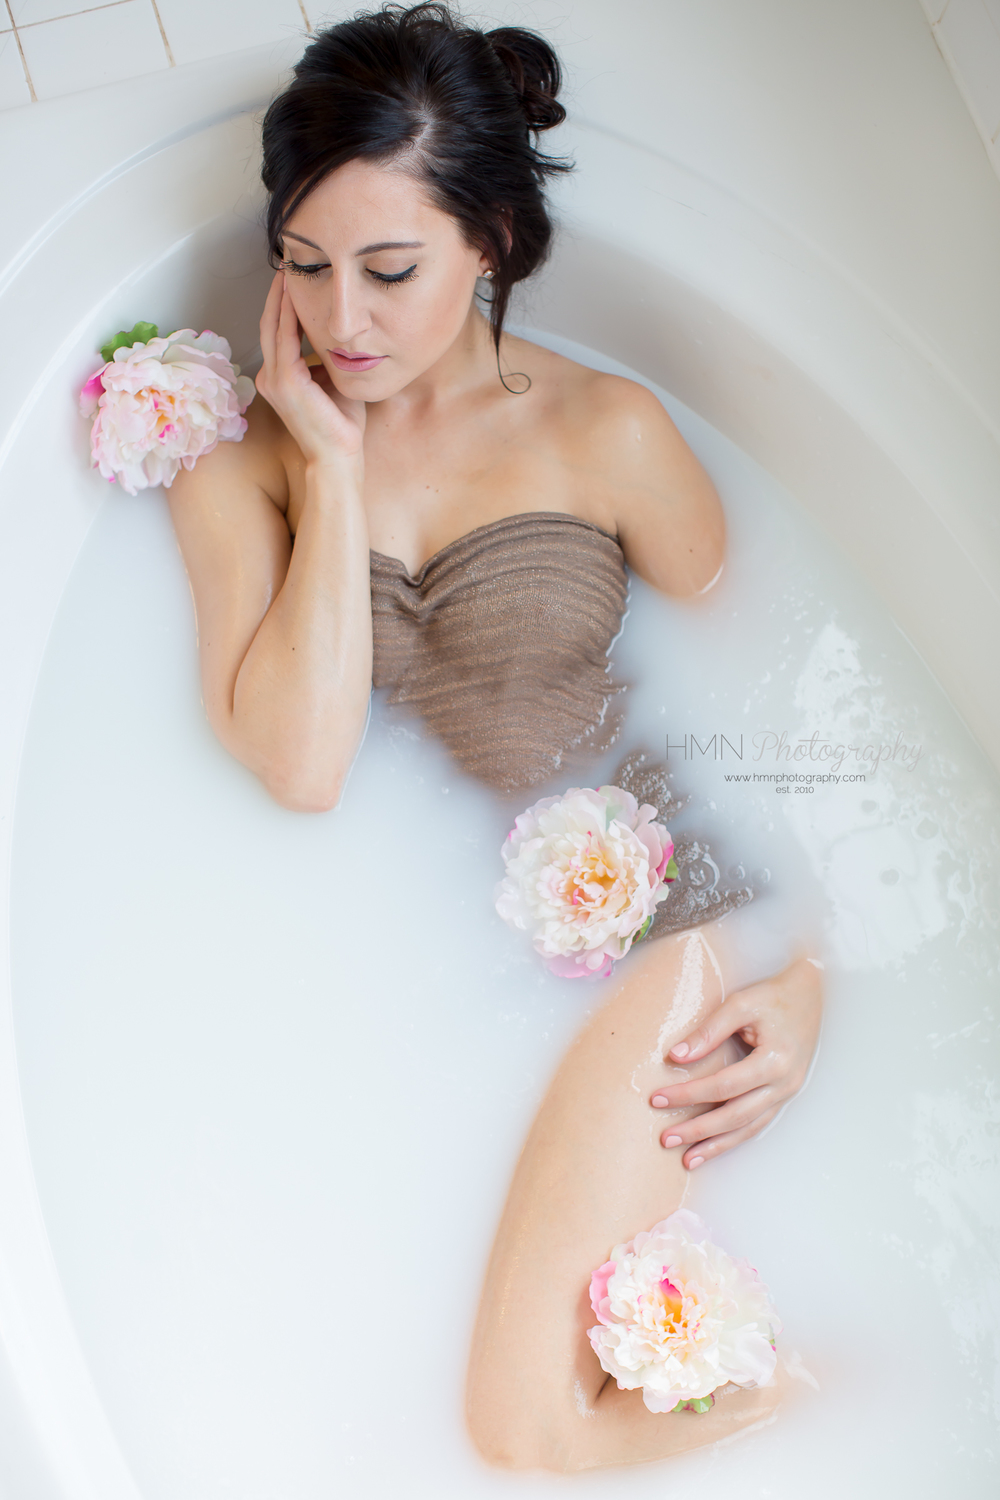 Boudoir Photography in Northern Virginia